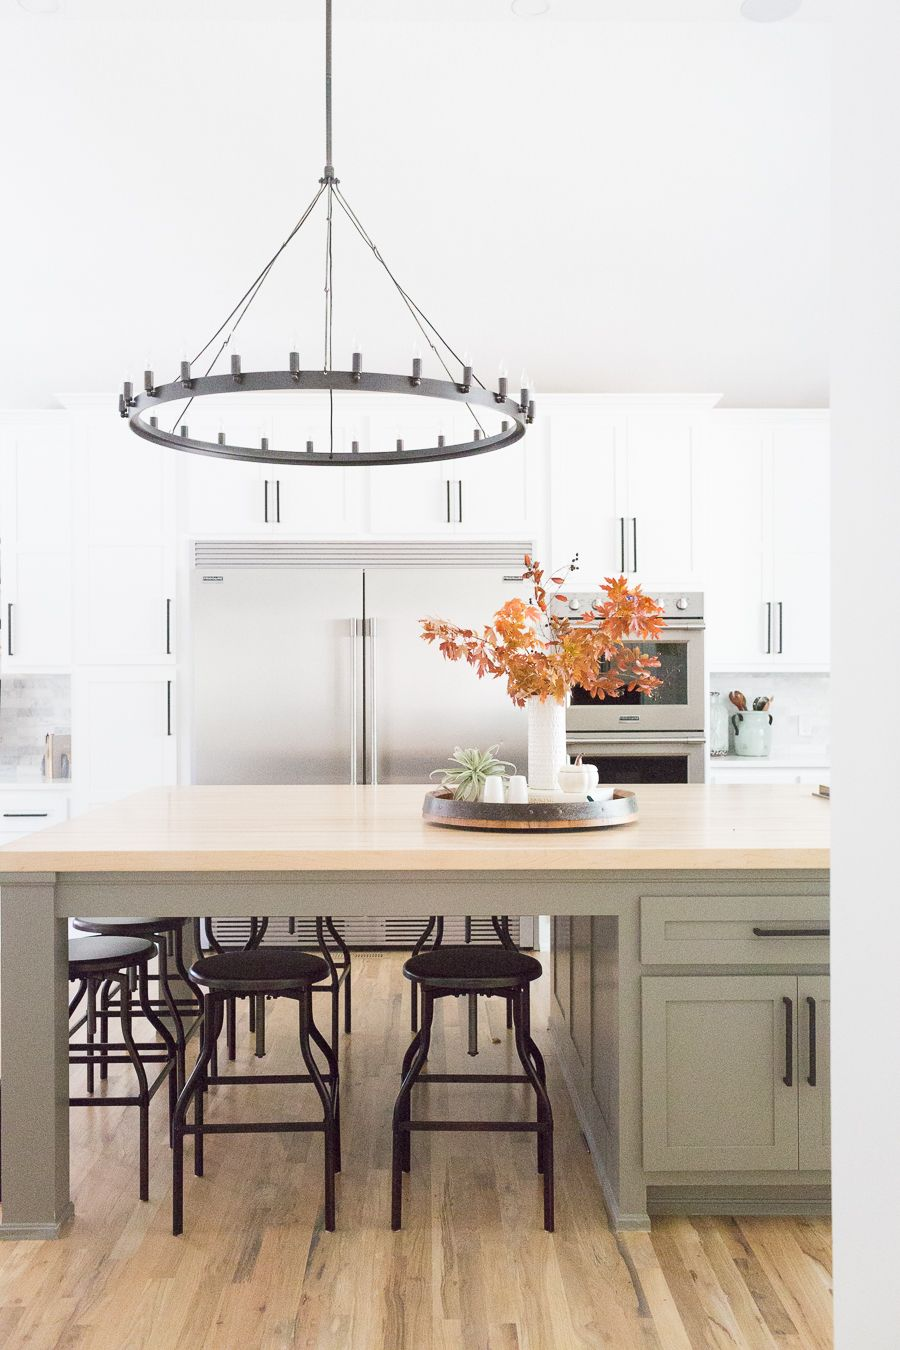 CC and Mike Tulsa Remodel Reveal | Grey kitchen island, Large ...